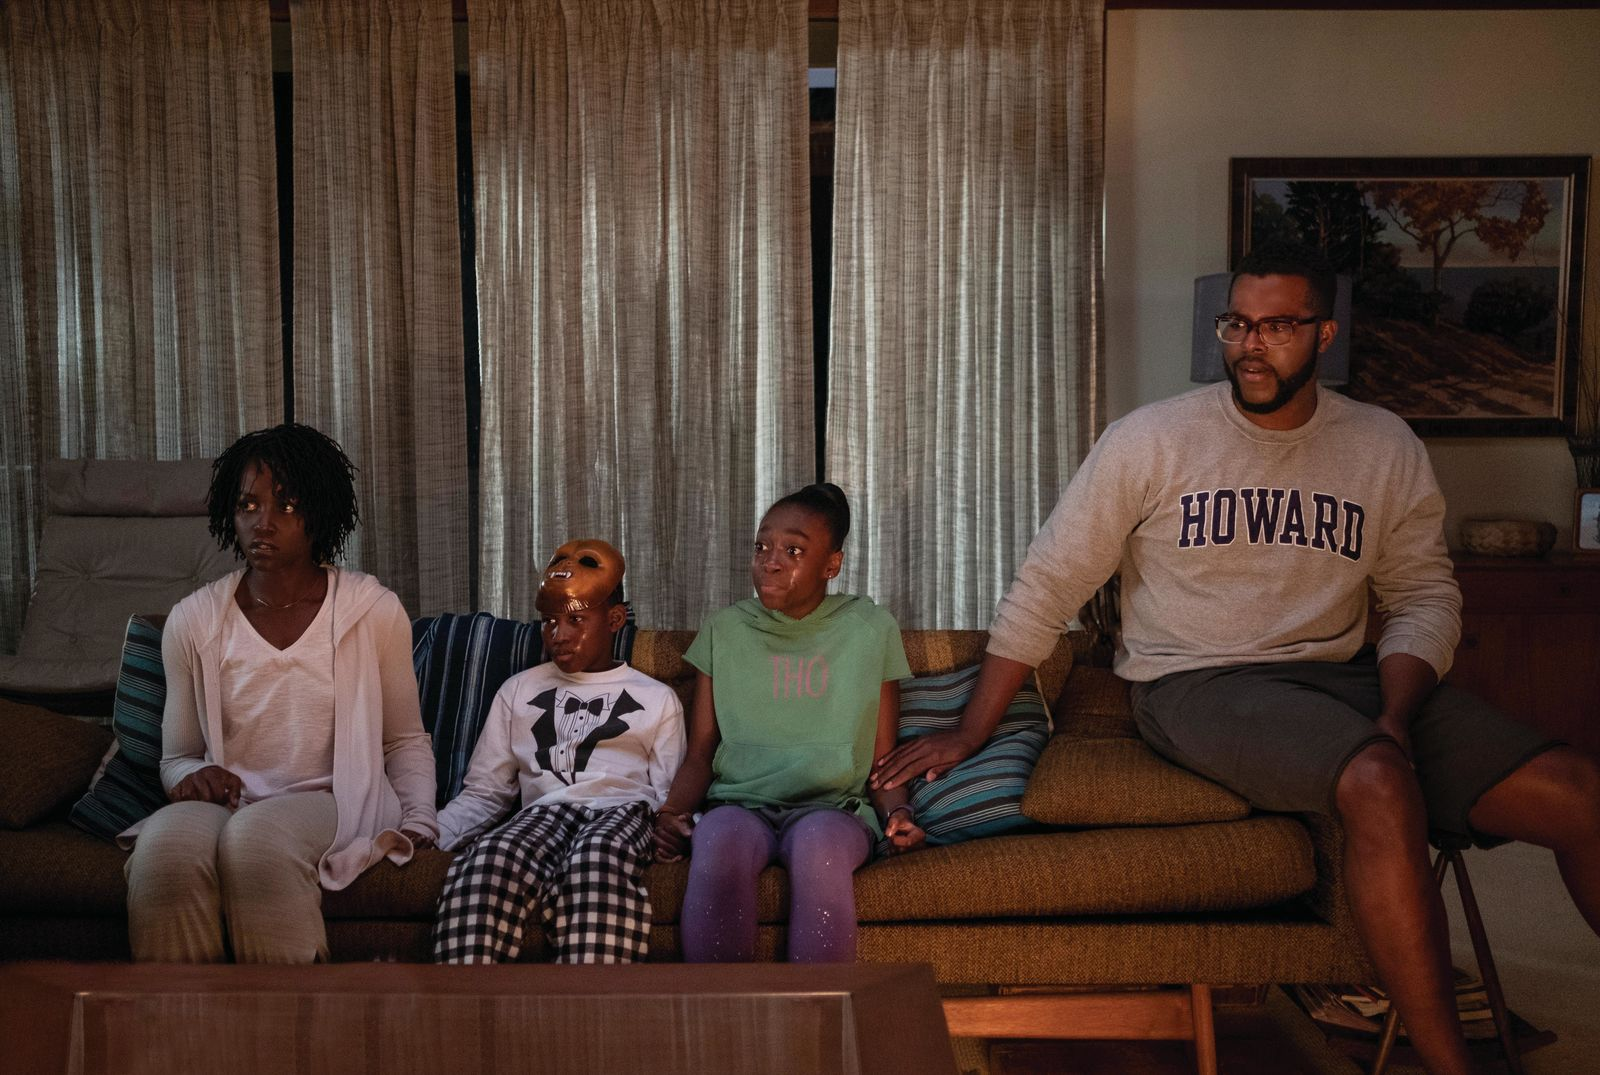 "Adelaide Wilson (Lupita Nyong'o), Jason Wilson (Evan Alex), Zora Wilson (Shahadi Wright Joseph) and Gabe Wilson (Winston Duke) in ""Us,"" written, produced and directed by Jordan Peele.{ }(Photo: Universal Pictures)"